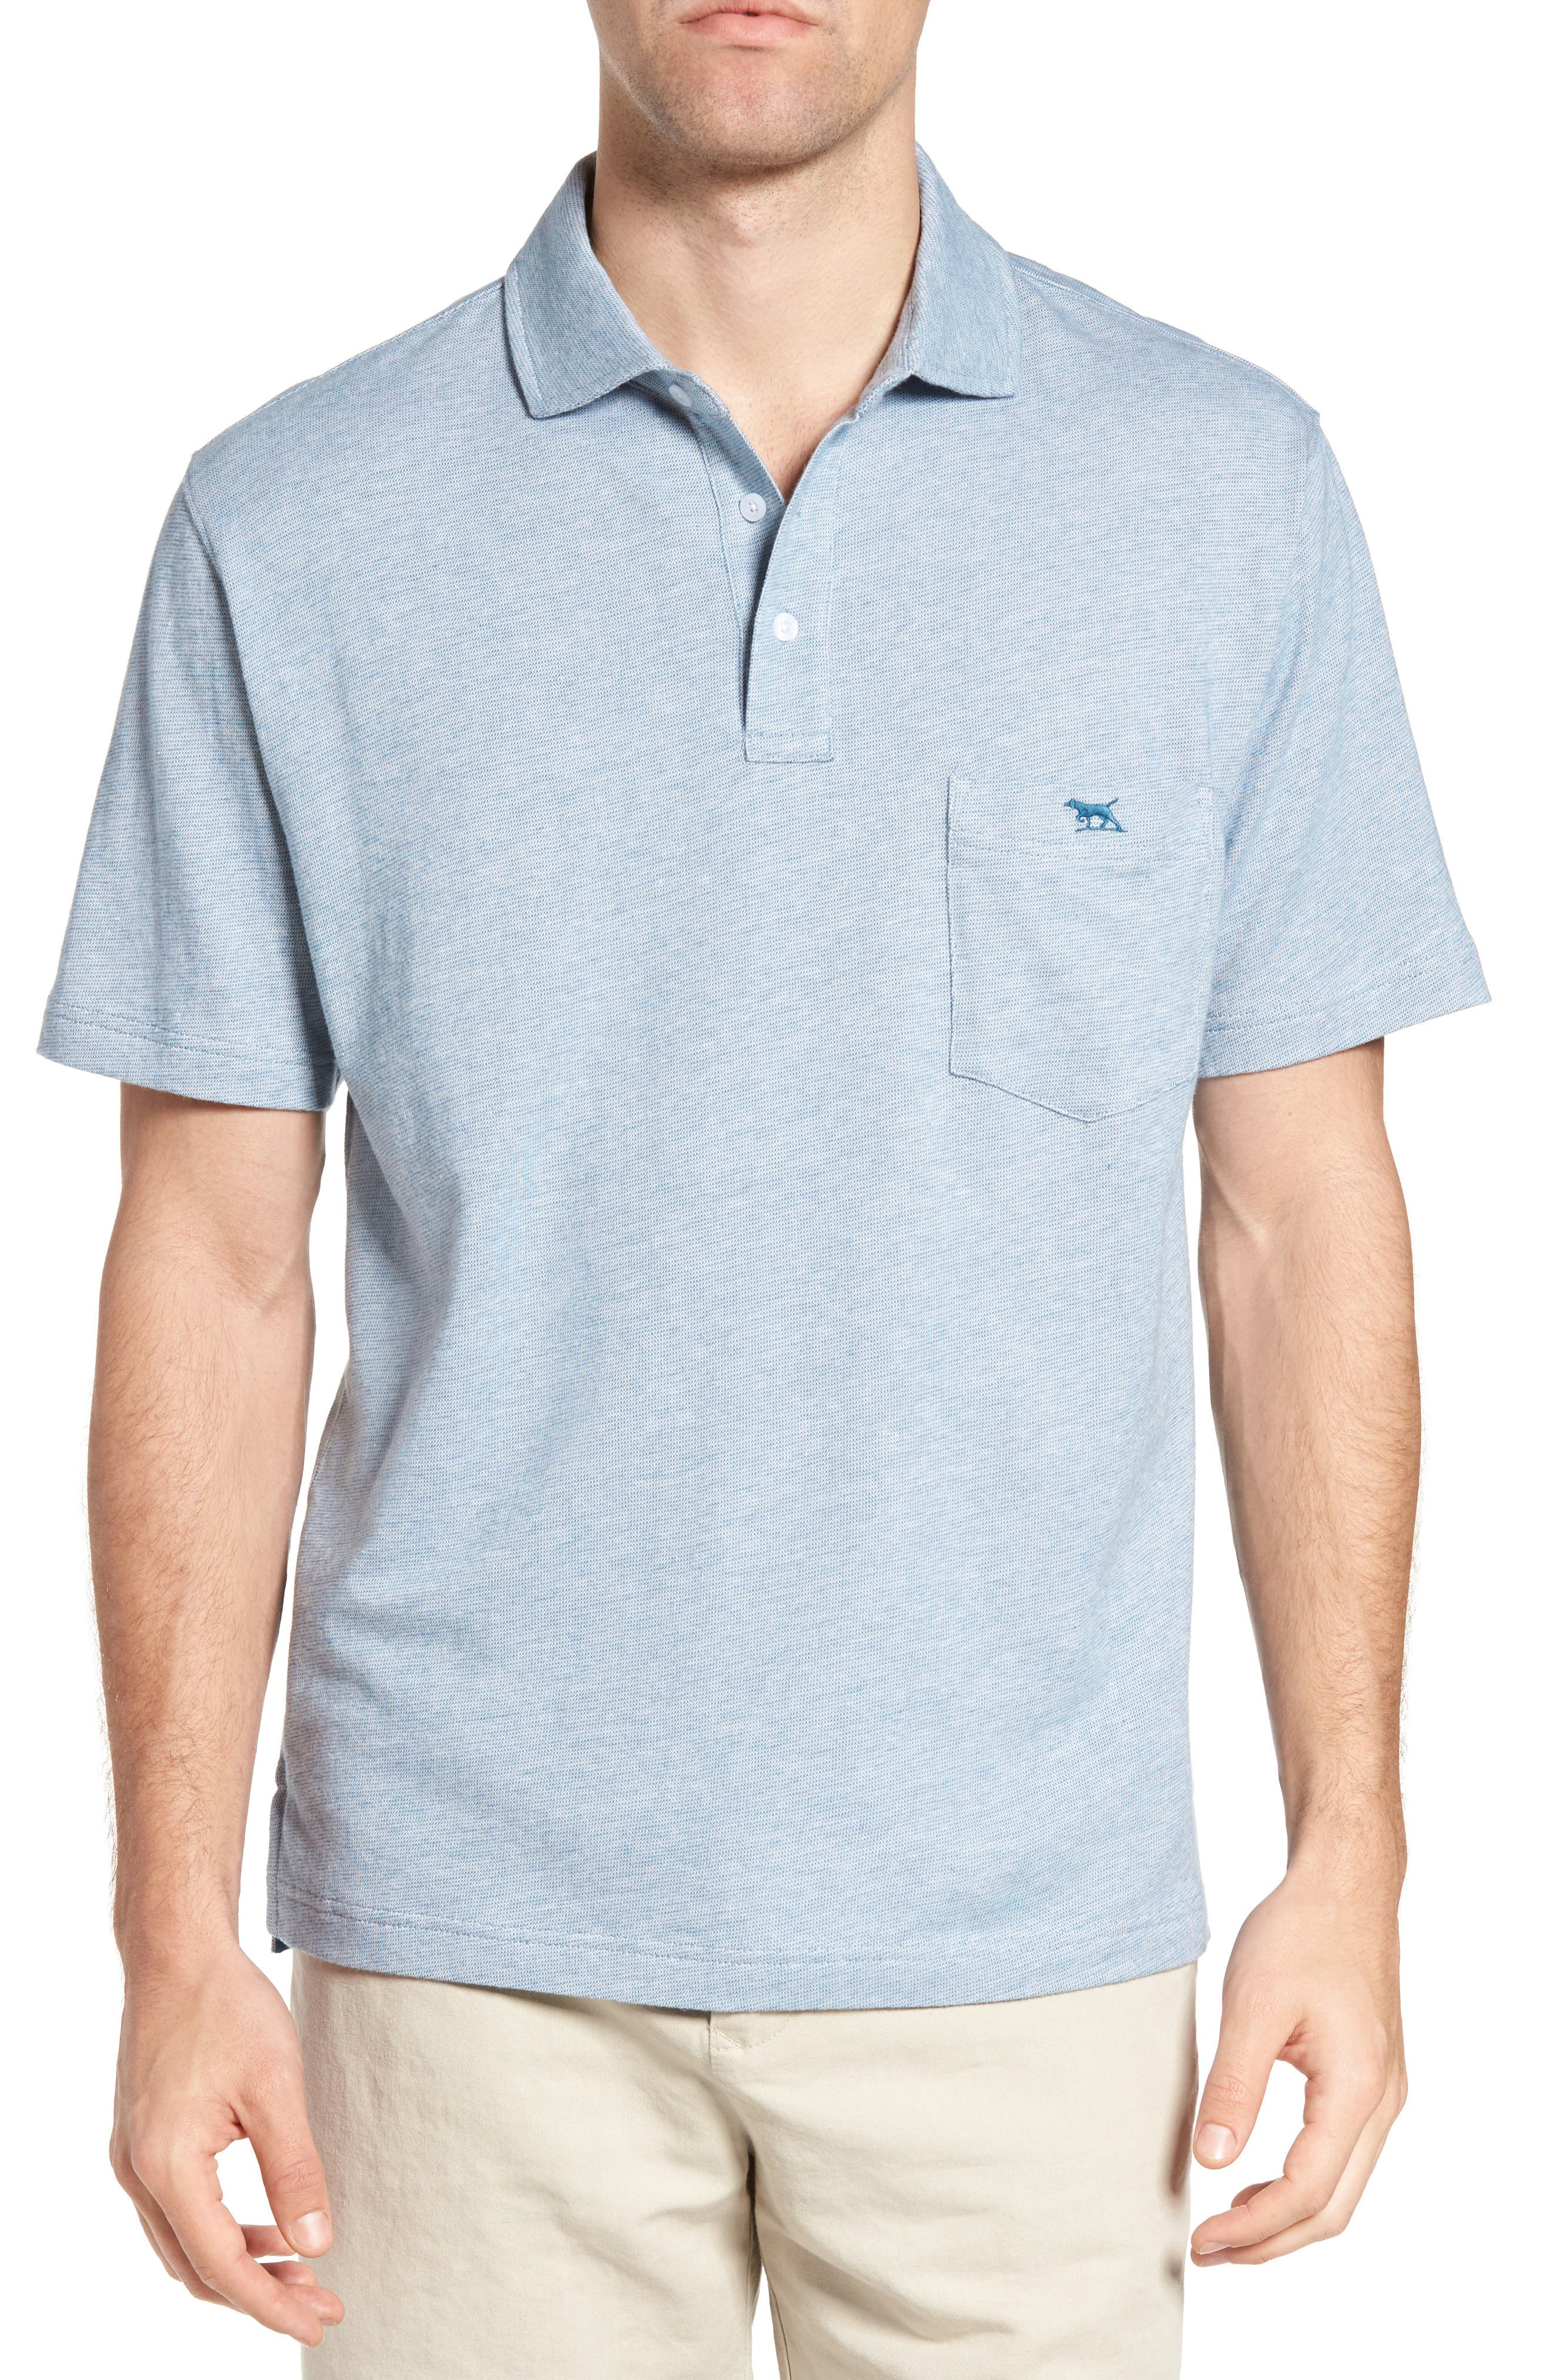 Rodd & Gunn Cornwall Original Fit Cotton Polo